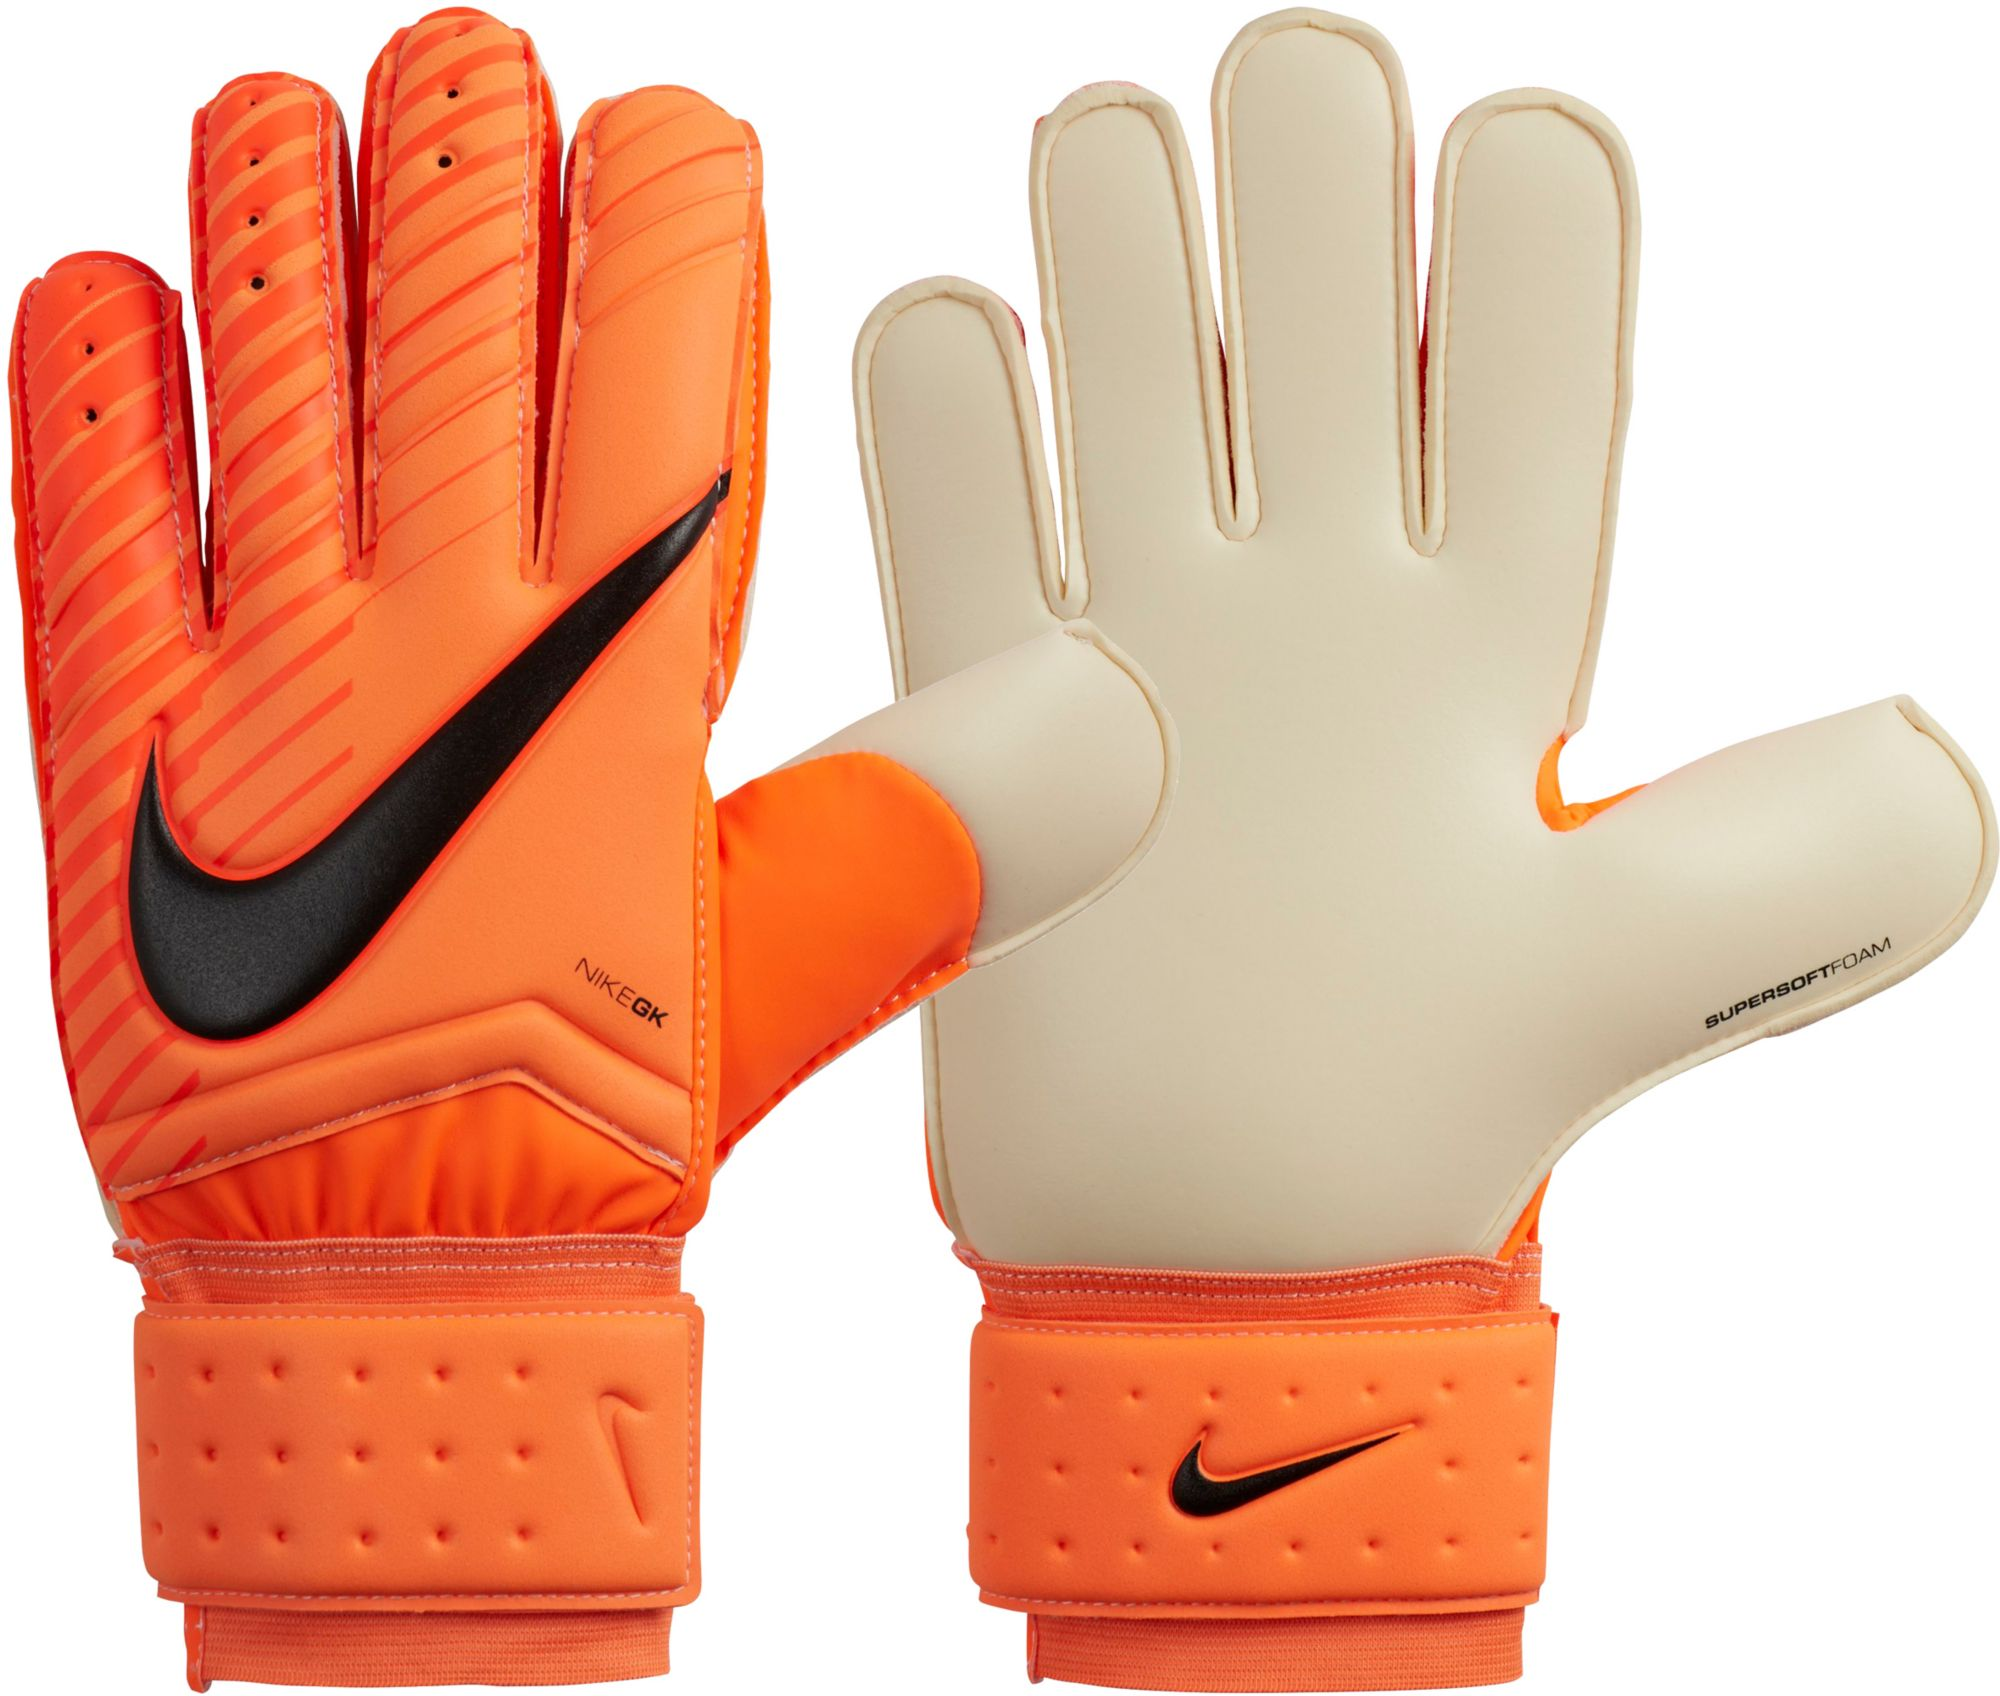 Nike Adult Gk Spyne Pro Soccer Goalkeeper Gloves by Nike